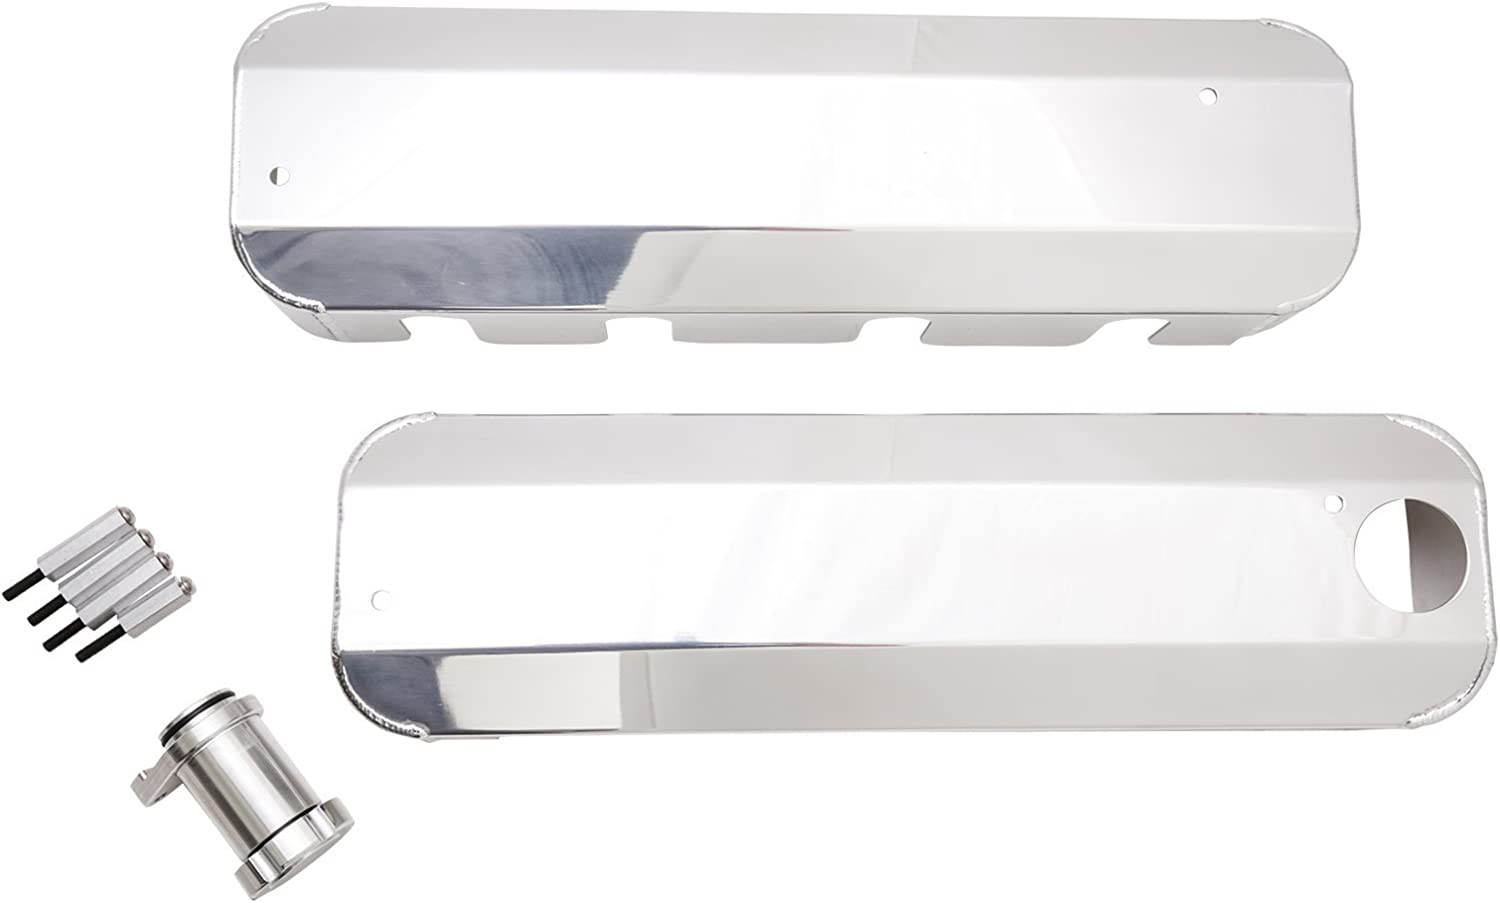 Top Street Performance JM8081-7P Polished LS1 Fabricated Coil Cover with Oil Filler